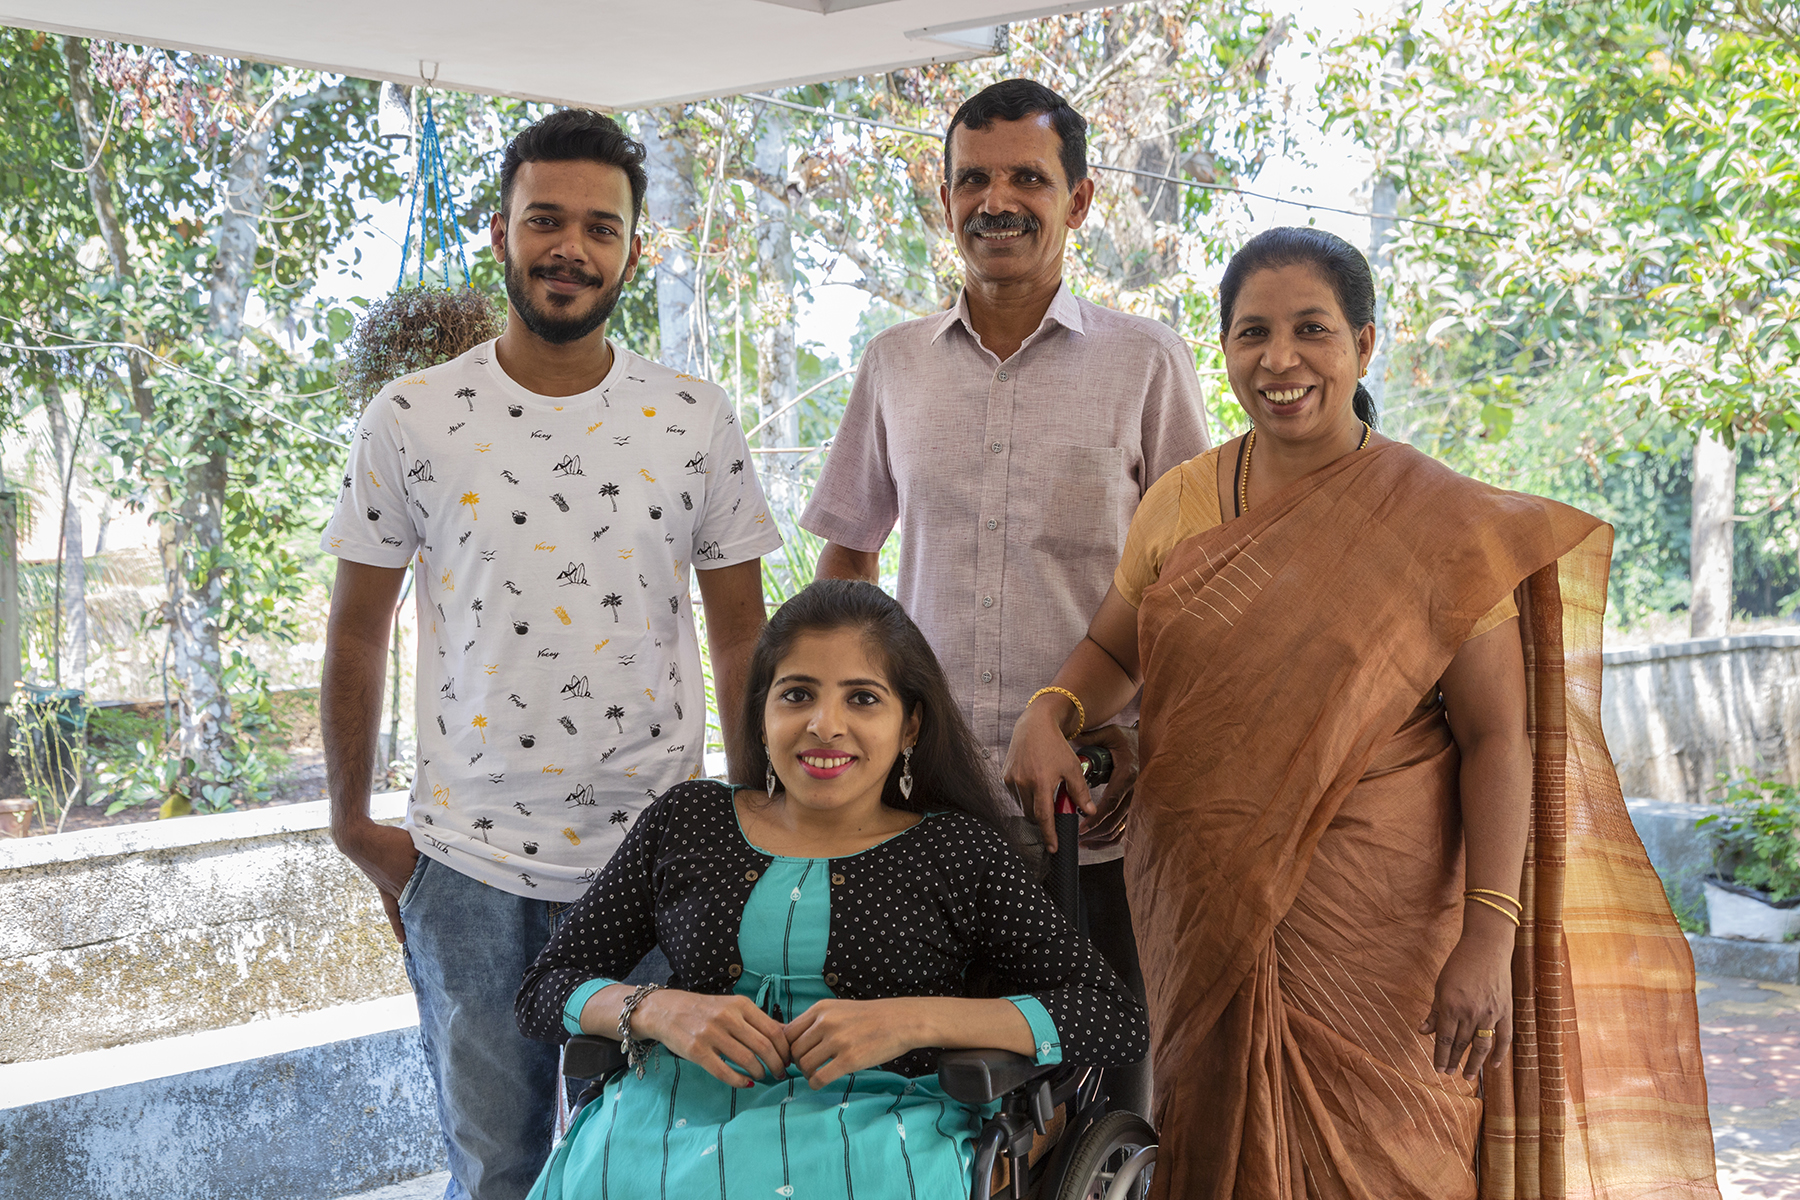 Anju Rani poses outdoors in her wheelchair with her family. Her hair is loose, she has red lipstick on, and she wears silver dangling earrings and a silver bracelet. A mock, full-sleeved, black waistcoat with white polka dots is stitched onto her sapphire blue kameez. Behind her (from left to right) are her brother Amal Joy (28) in blue jeans and white T-shirt, father Joy K.G. (61) in light pink shirt and dark trousers, and mother Jessy Joy (56) in a light brown sari and sandalwood-coloured blouse.